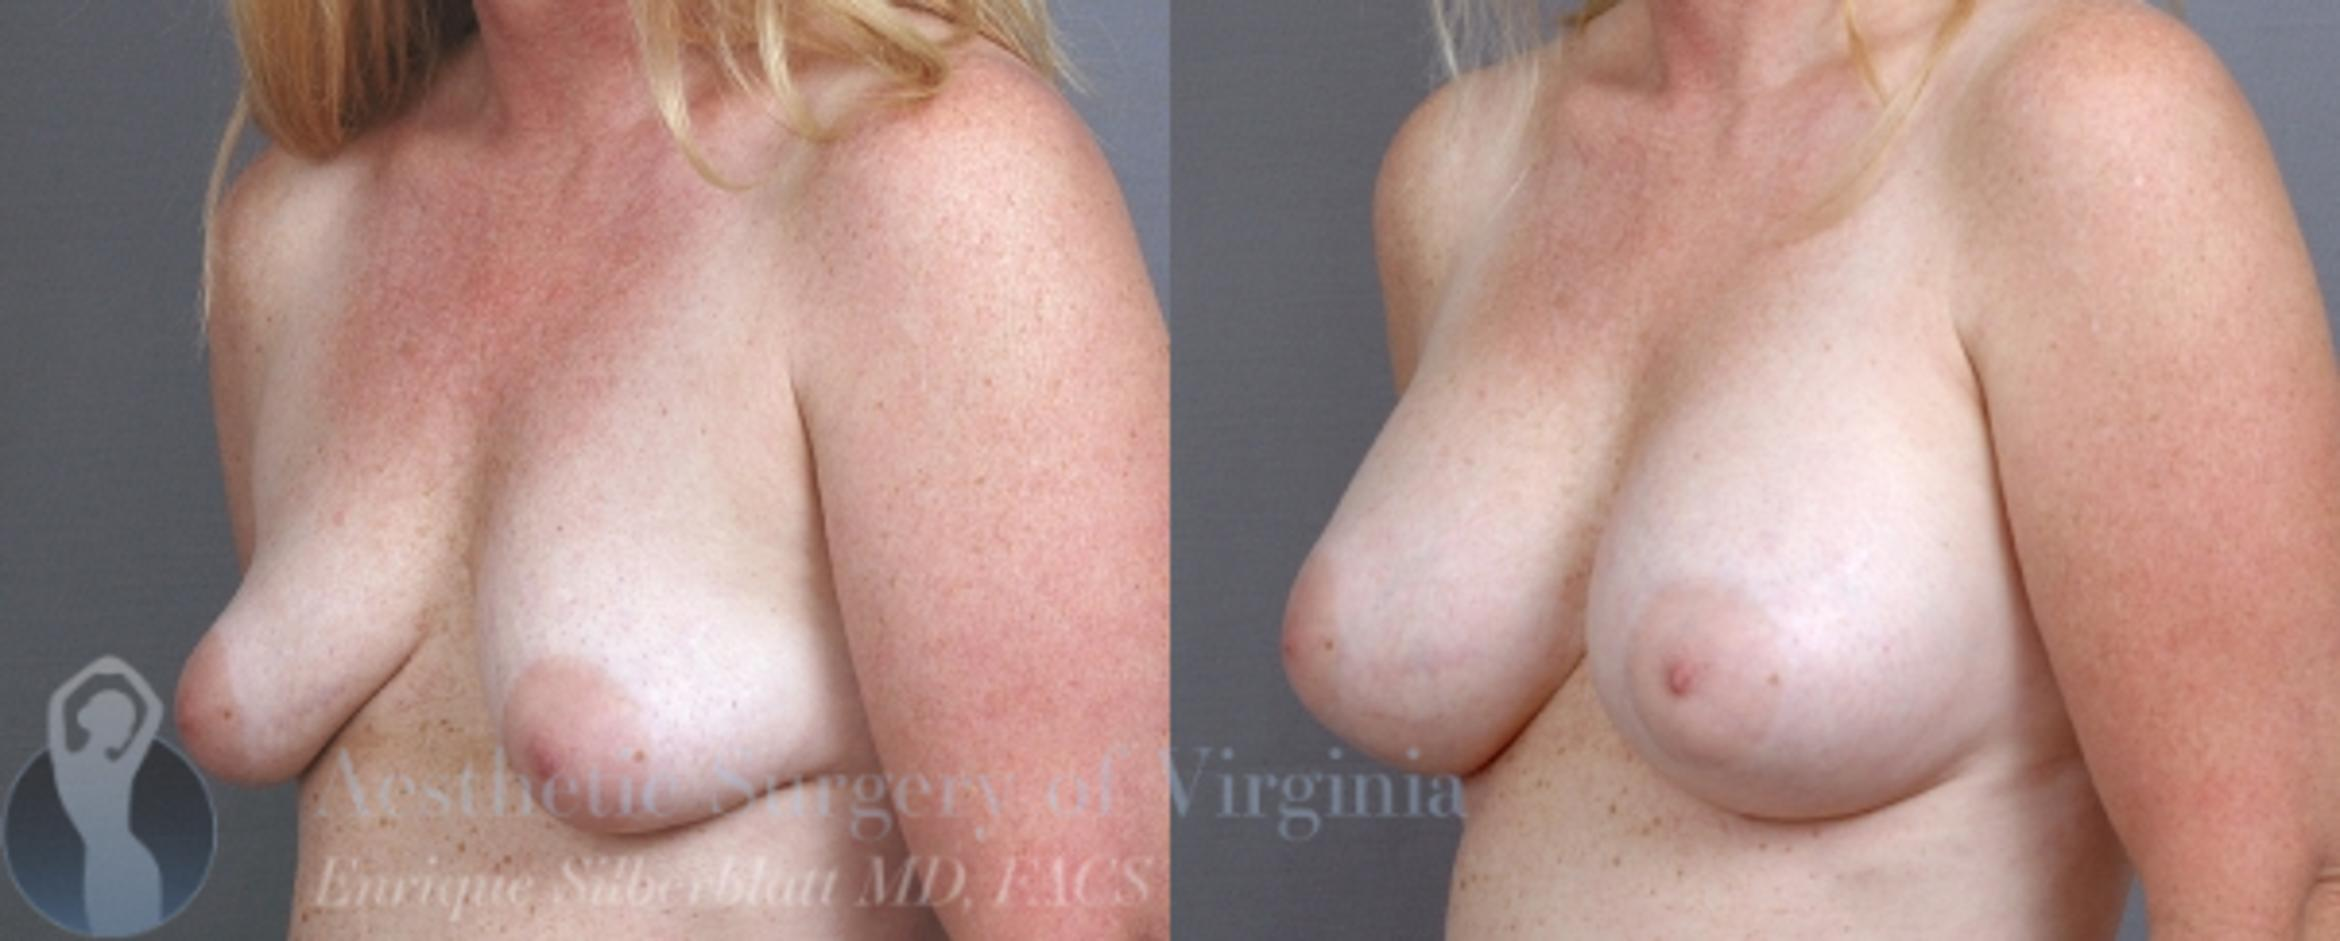 Breast Augmentation Case 9 Before & After View #2 | Roanoke, VA | Aesthetic Surgery of Virginia: Enrique Silberblatt, MD